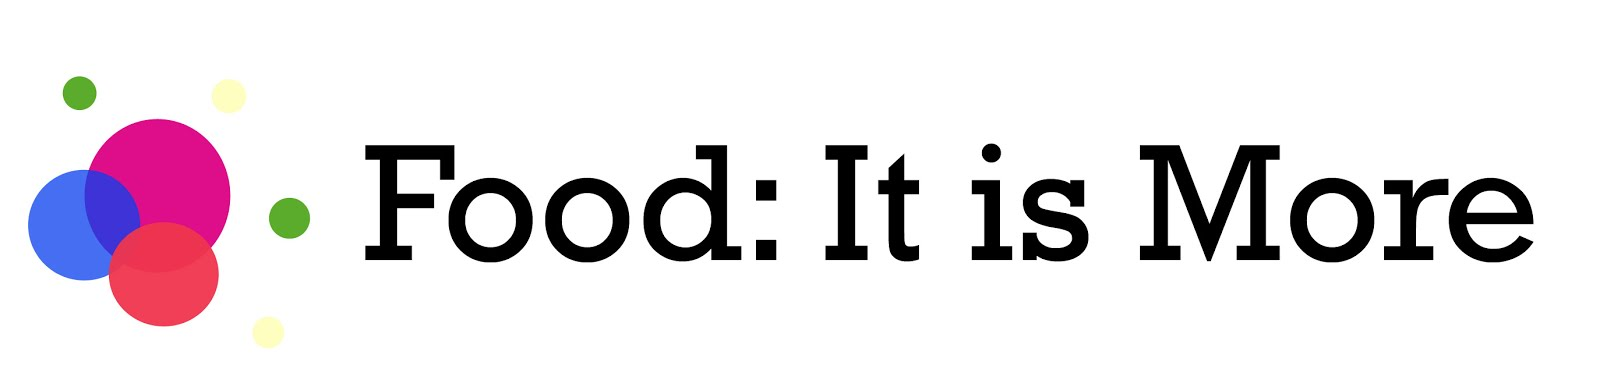 Food: It is More